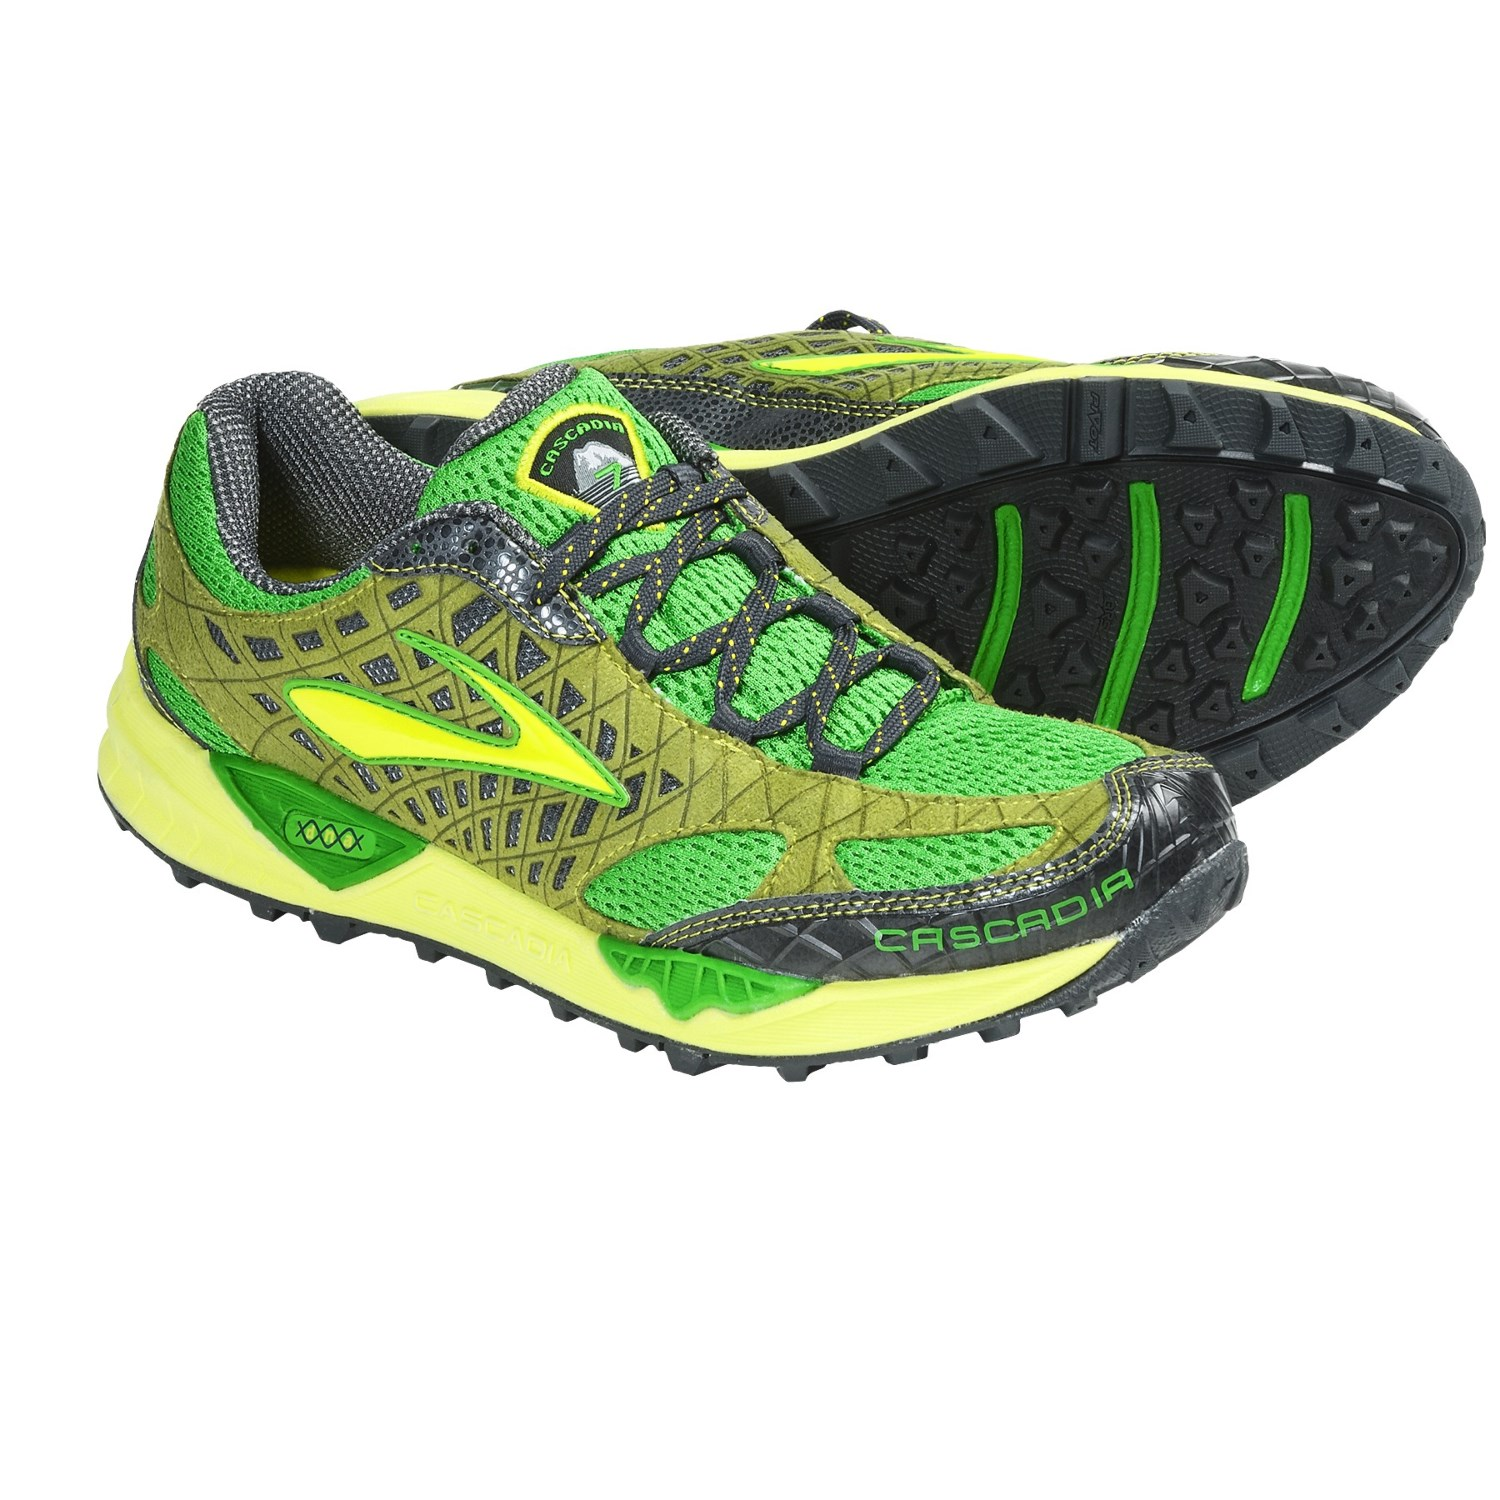 What Are The Best Value Trail Running Shoes